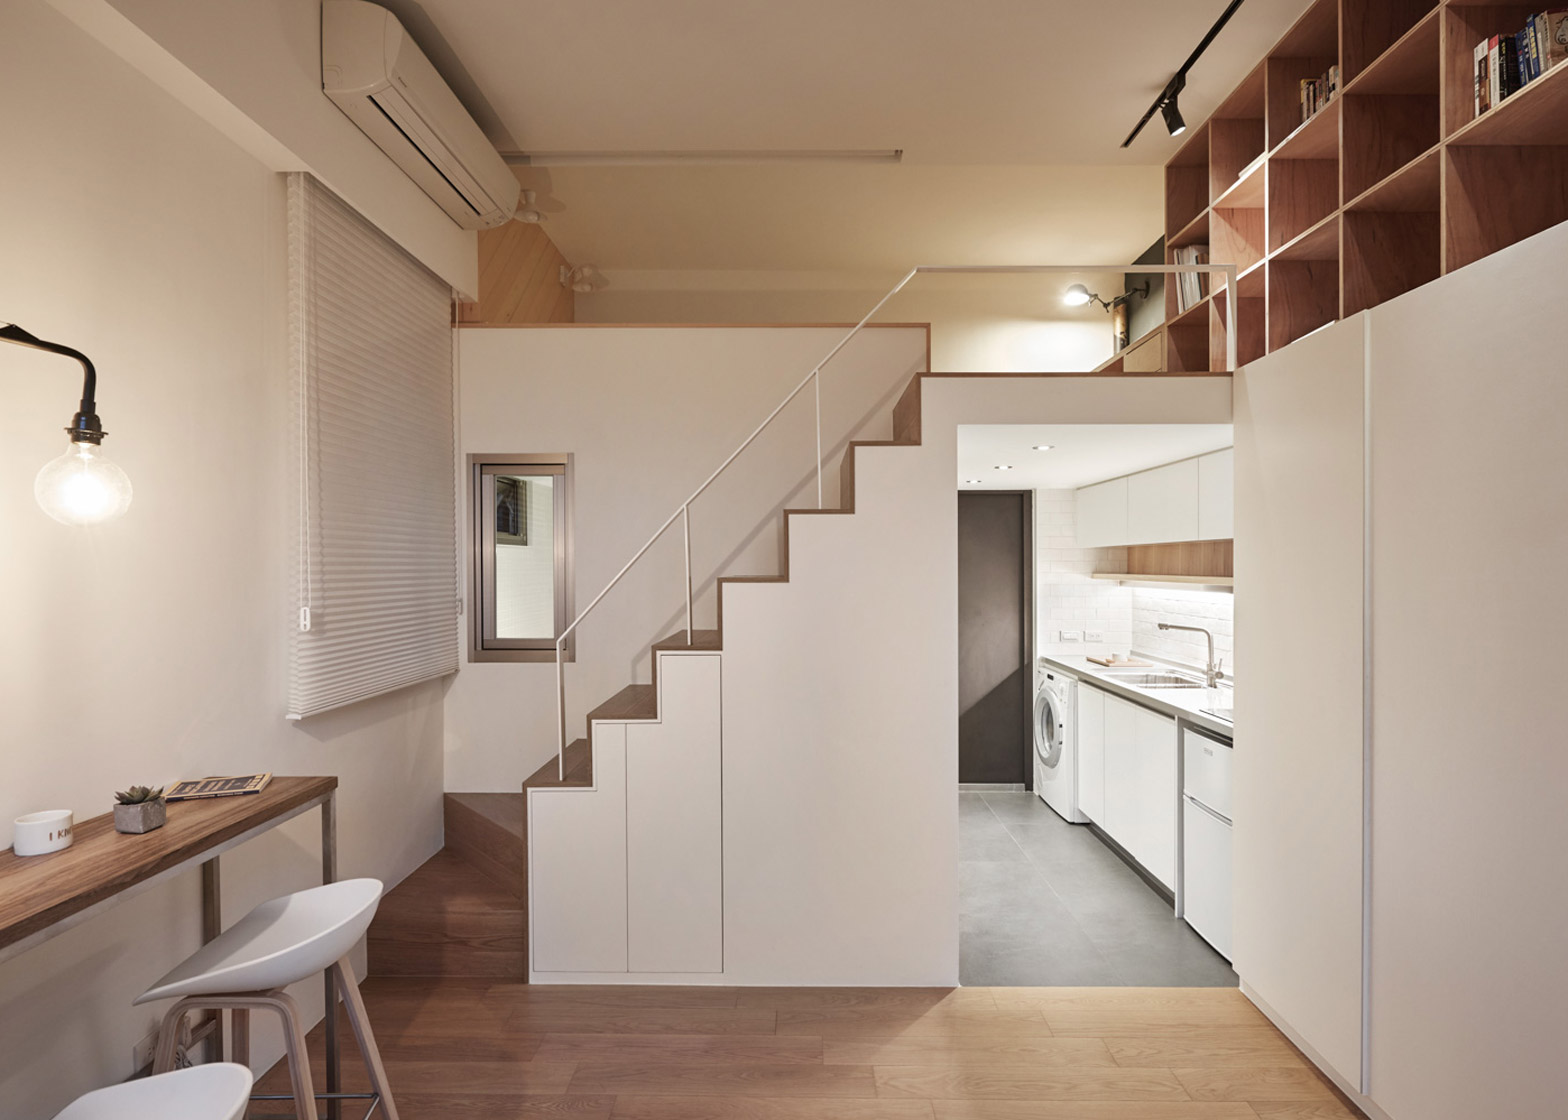 Apartment Design Images little design creates 22m2 apartment in taiwan